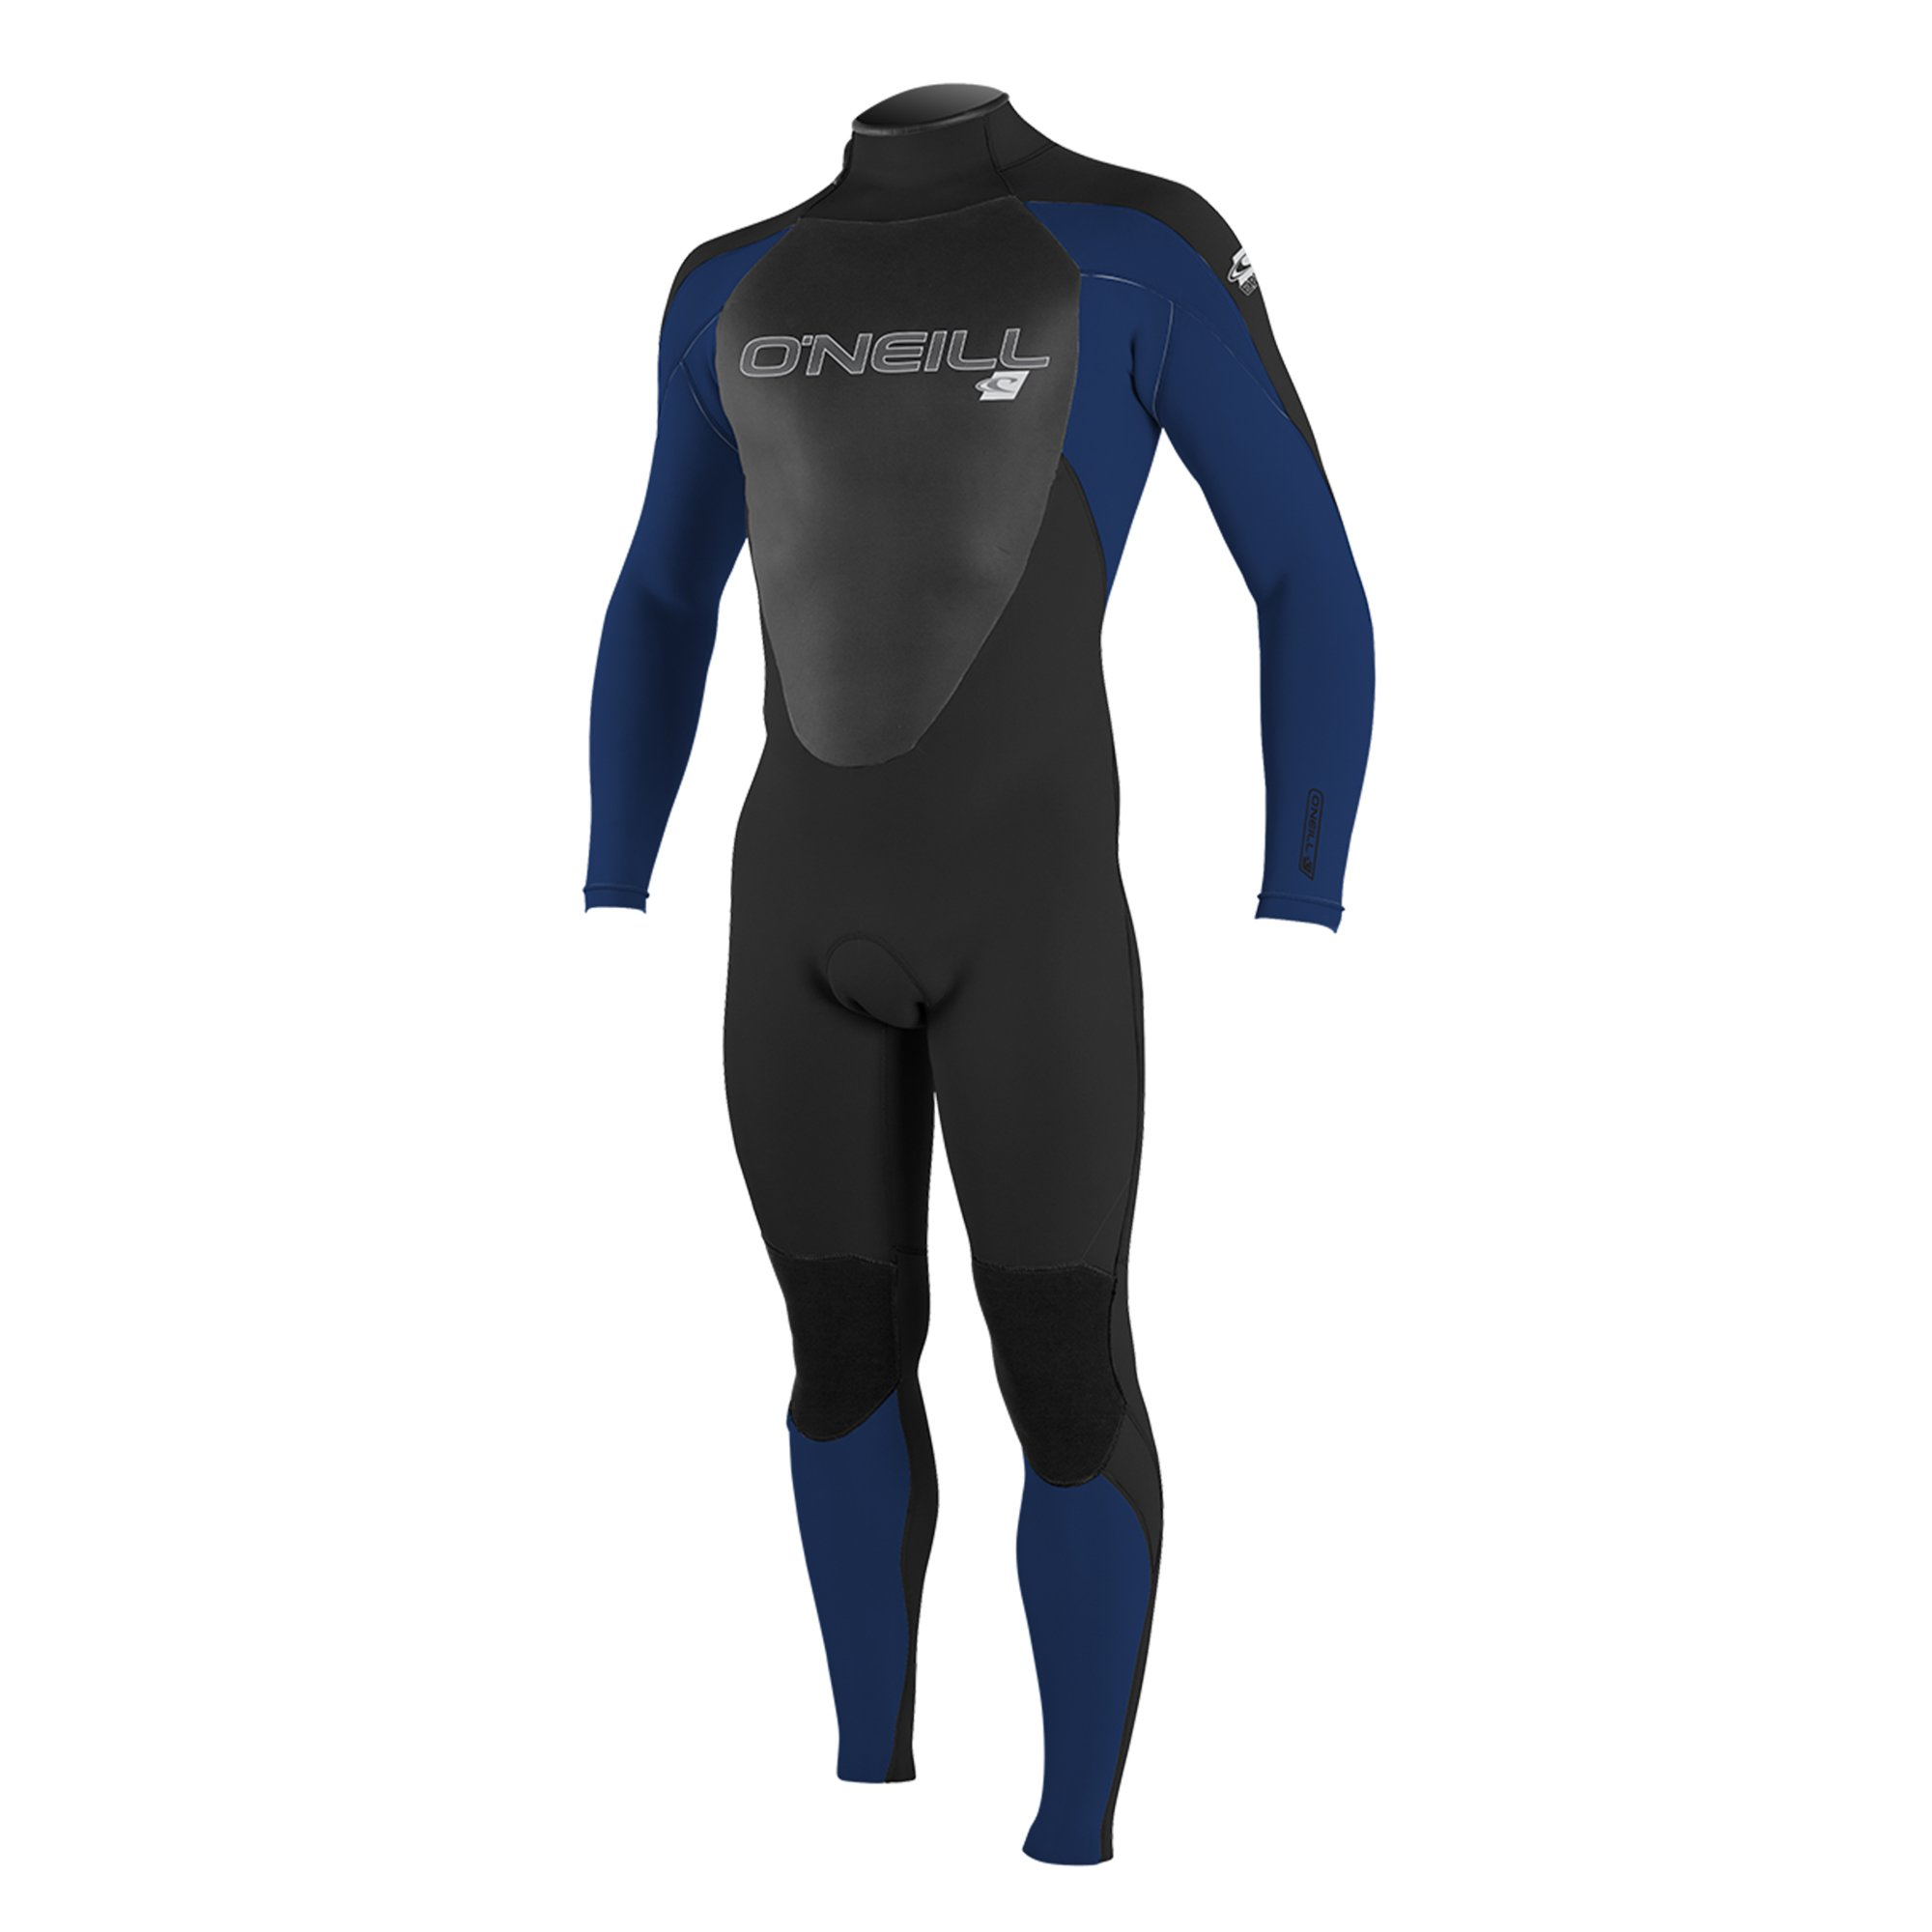 O'Neill Men's Epic 4/3mm Back Zip Full Wetsuit, Black/Navy/Black, Small